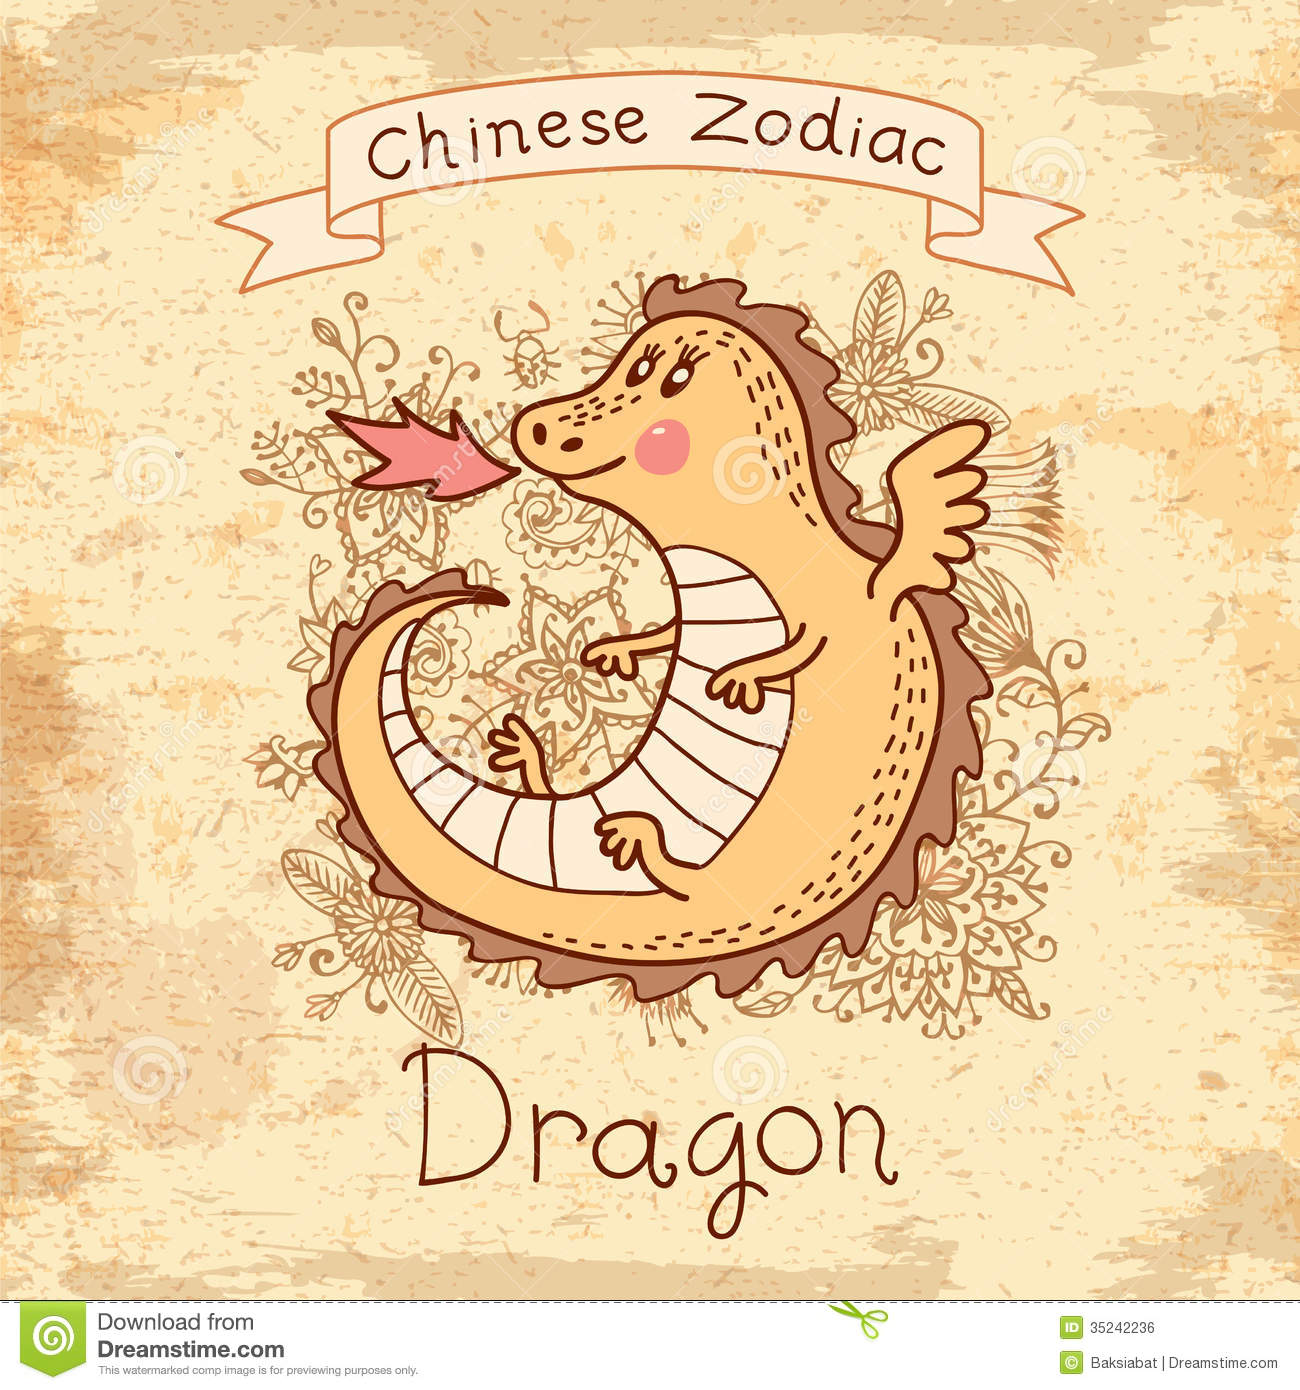 Vintage Chinese Calendar : Vintage card with chinese zodiac dragon stock vector